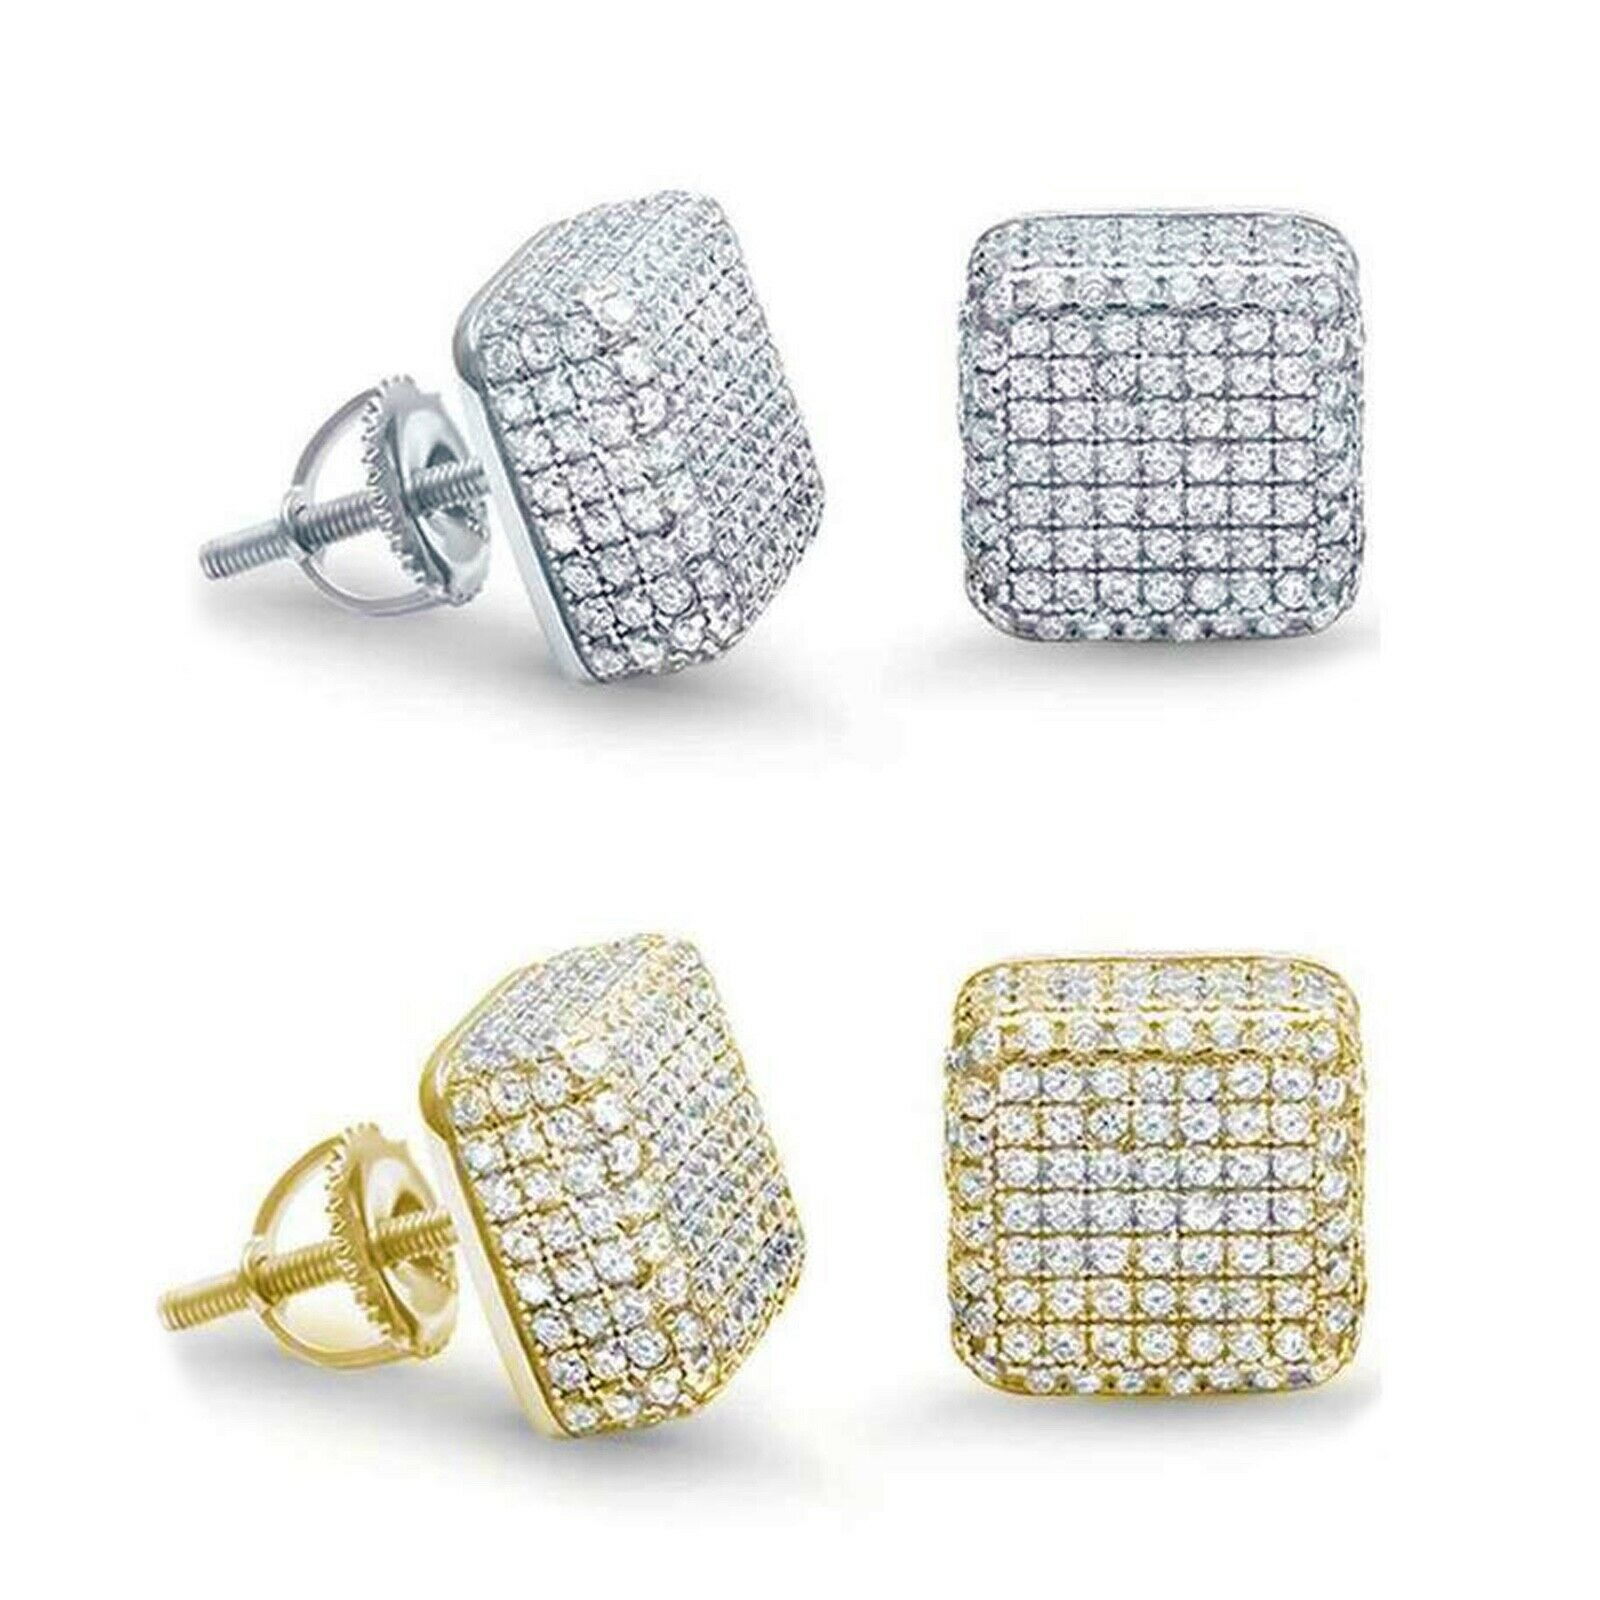 Details about  /Yellow or White Gold Micro Pave Sterling Silver Raised Square Stud Earrings